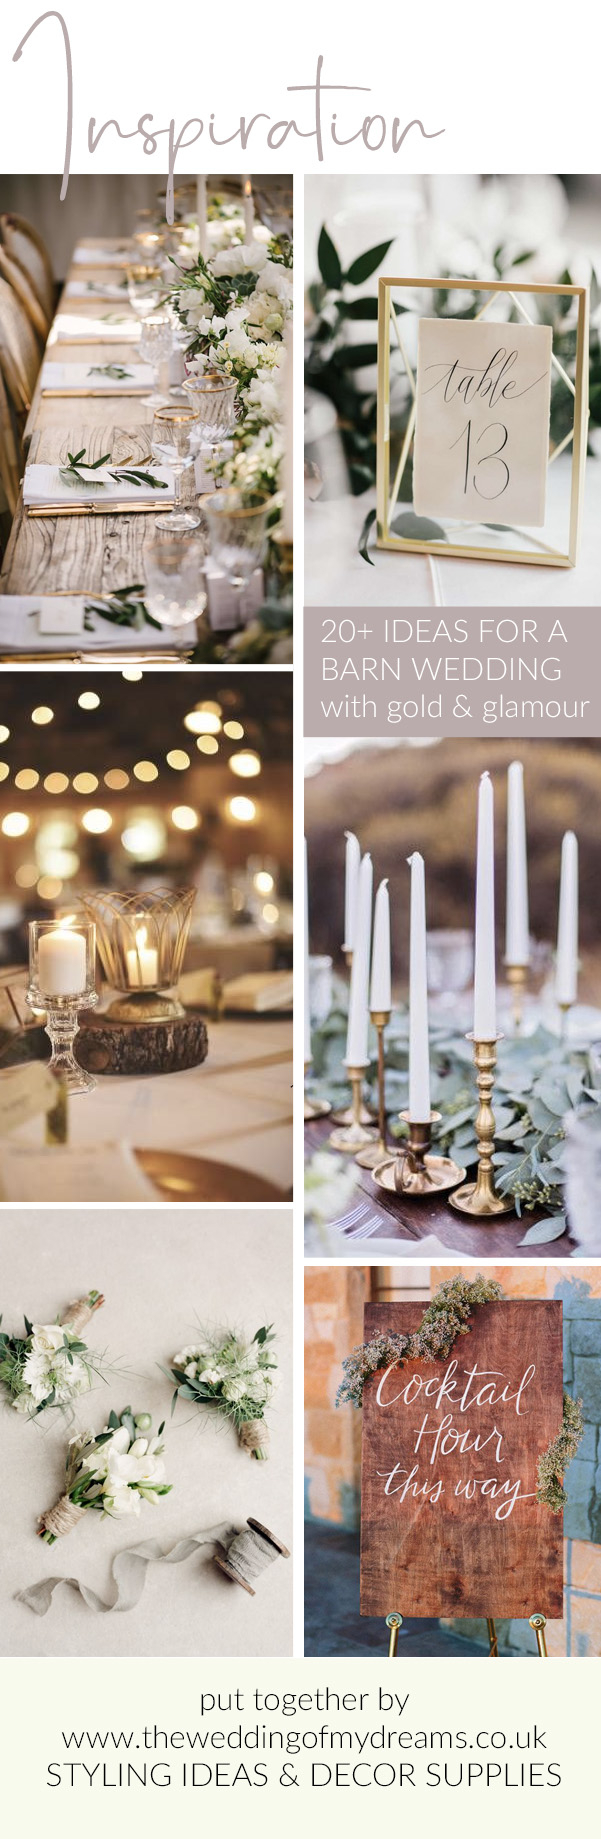 Wedding Styling Ideas 20 Barn Wedding Styling Ideas With A Hint Of Gold